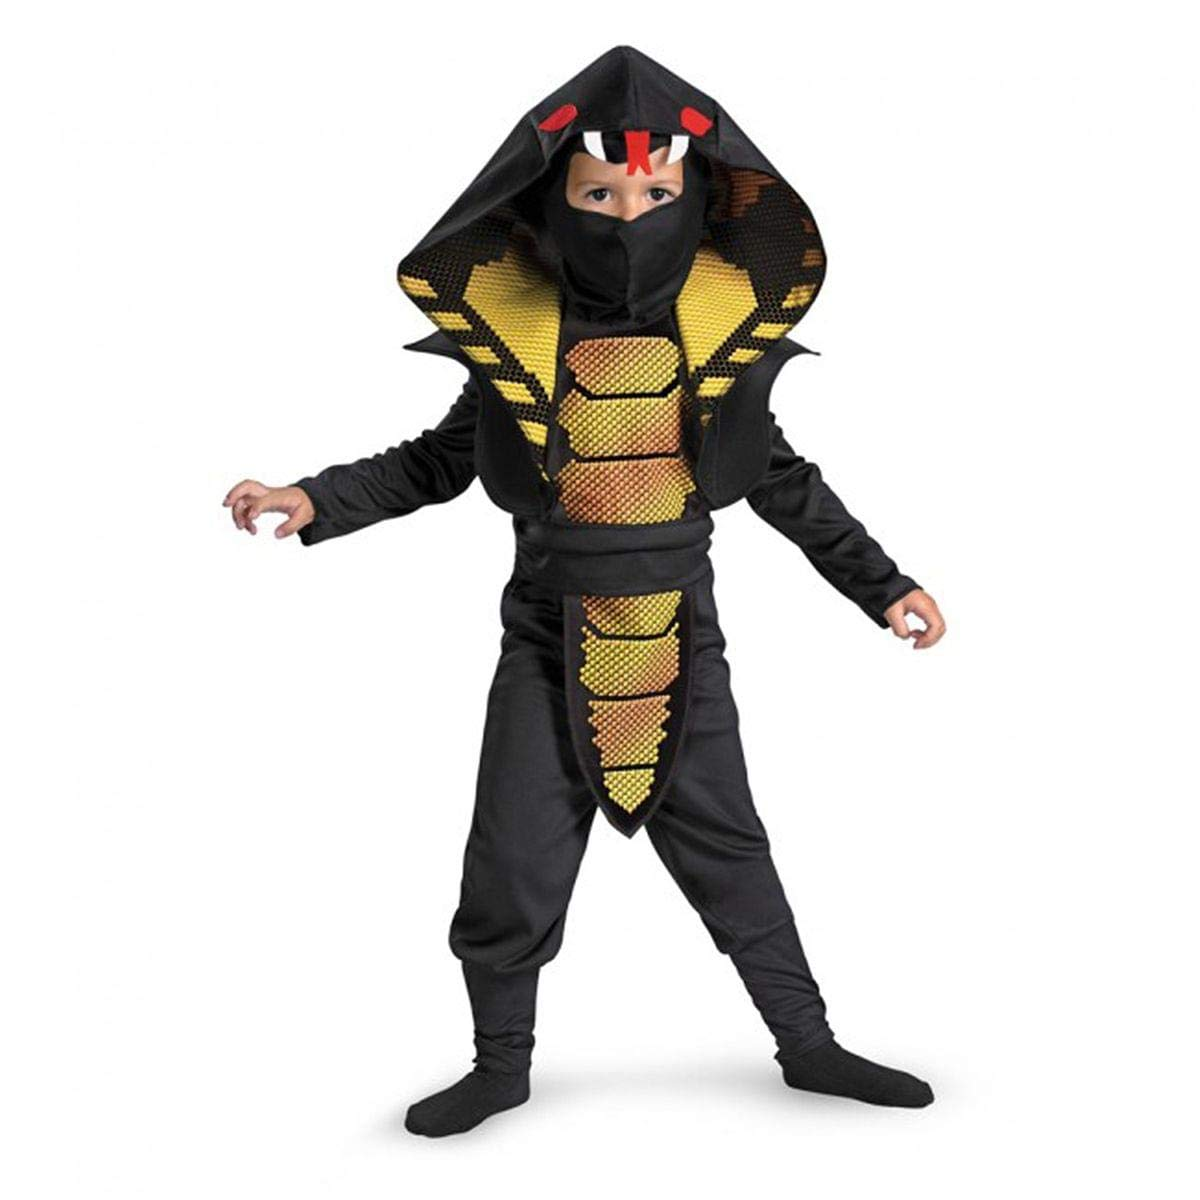 Cobra Ninja Boys Costume, 4-6